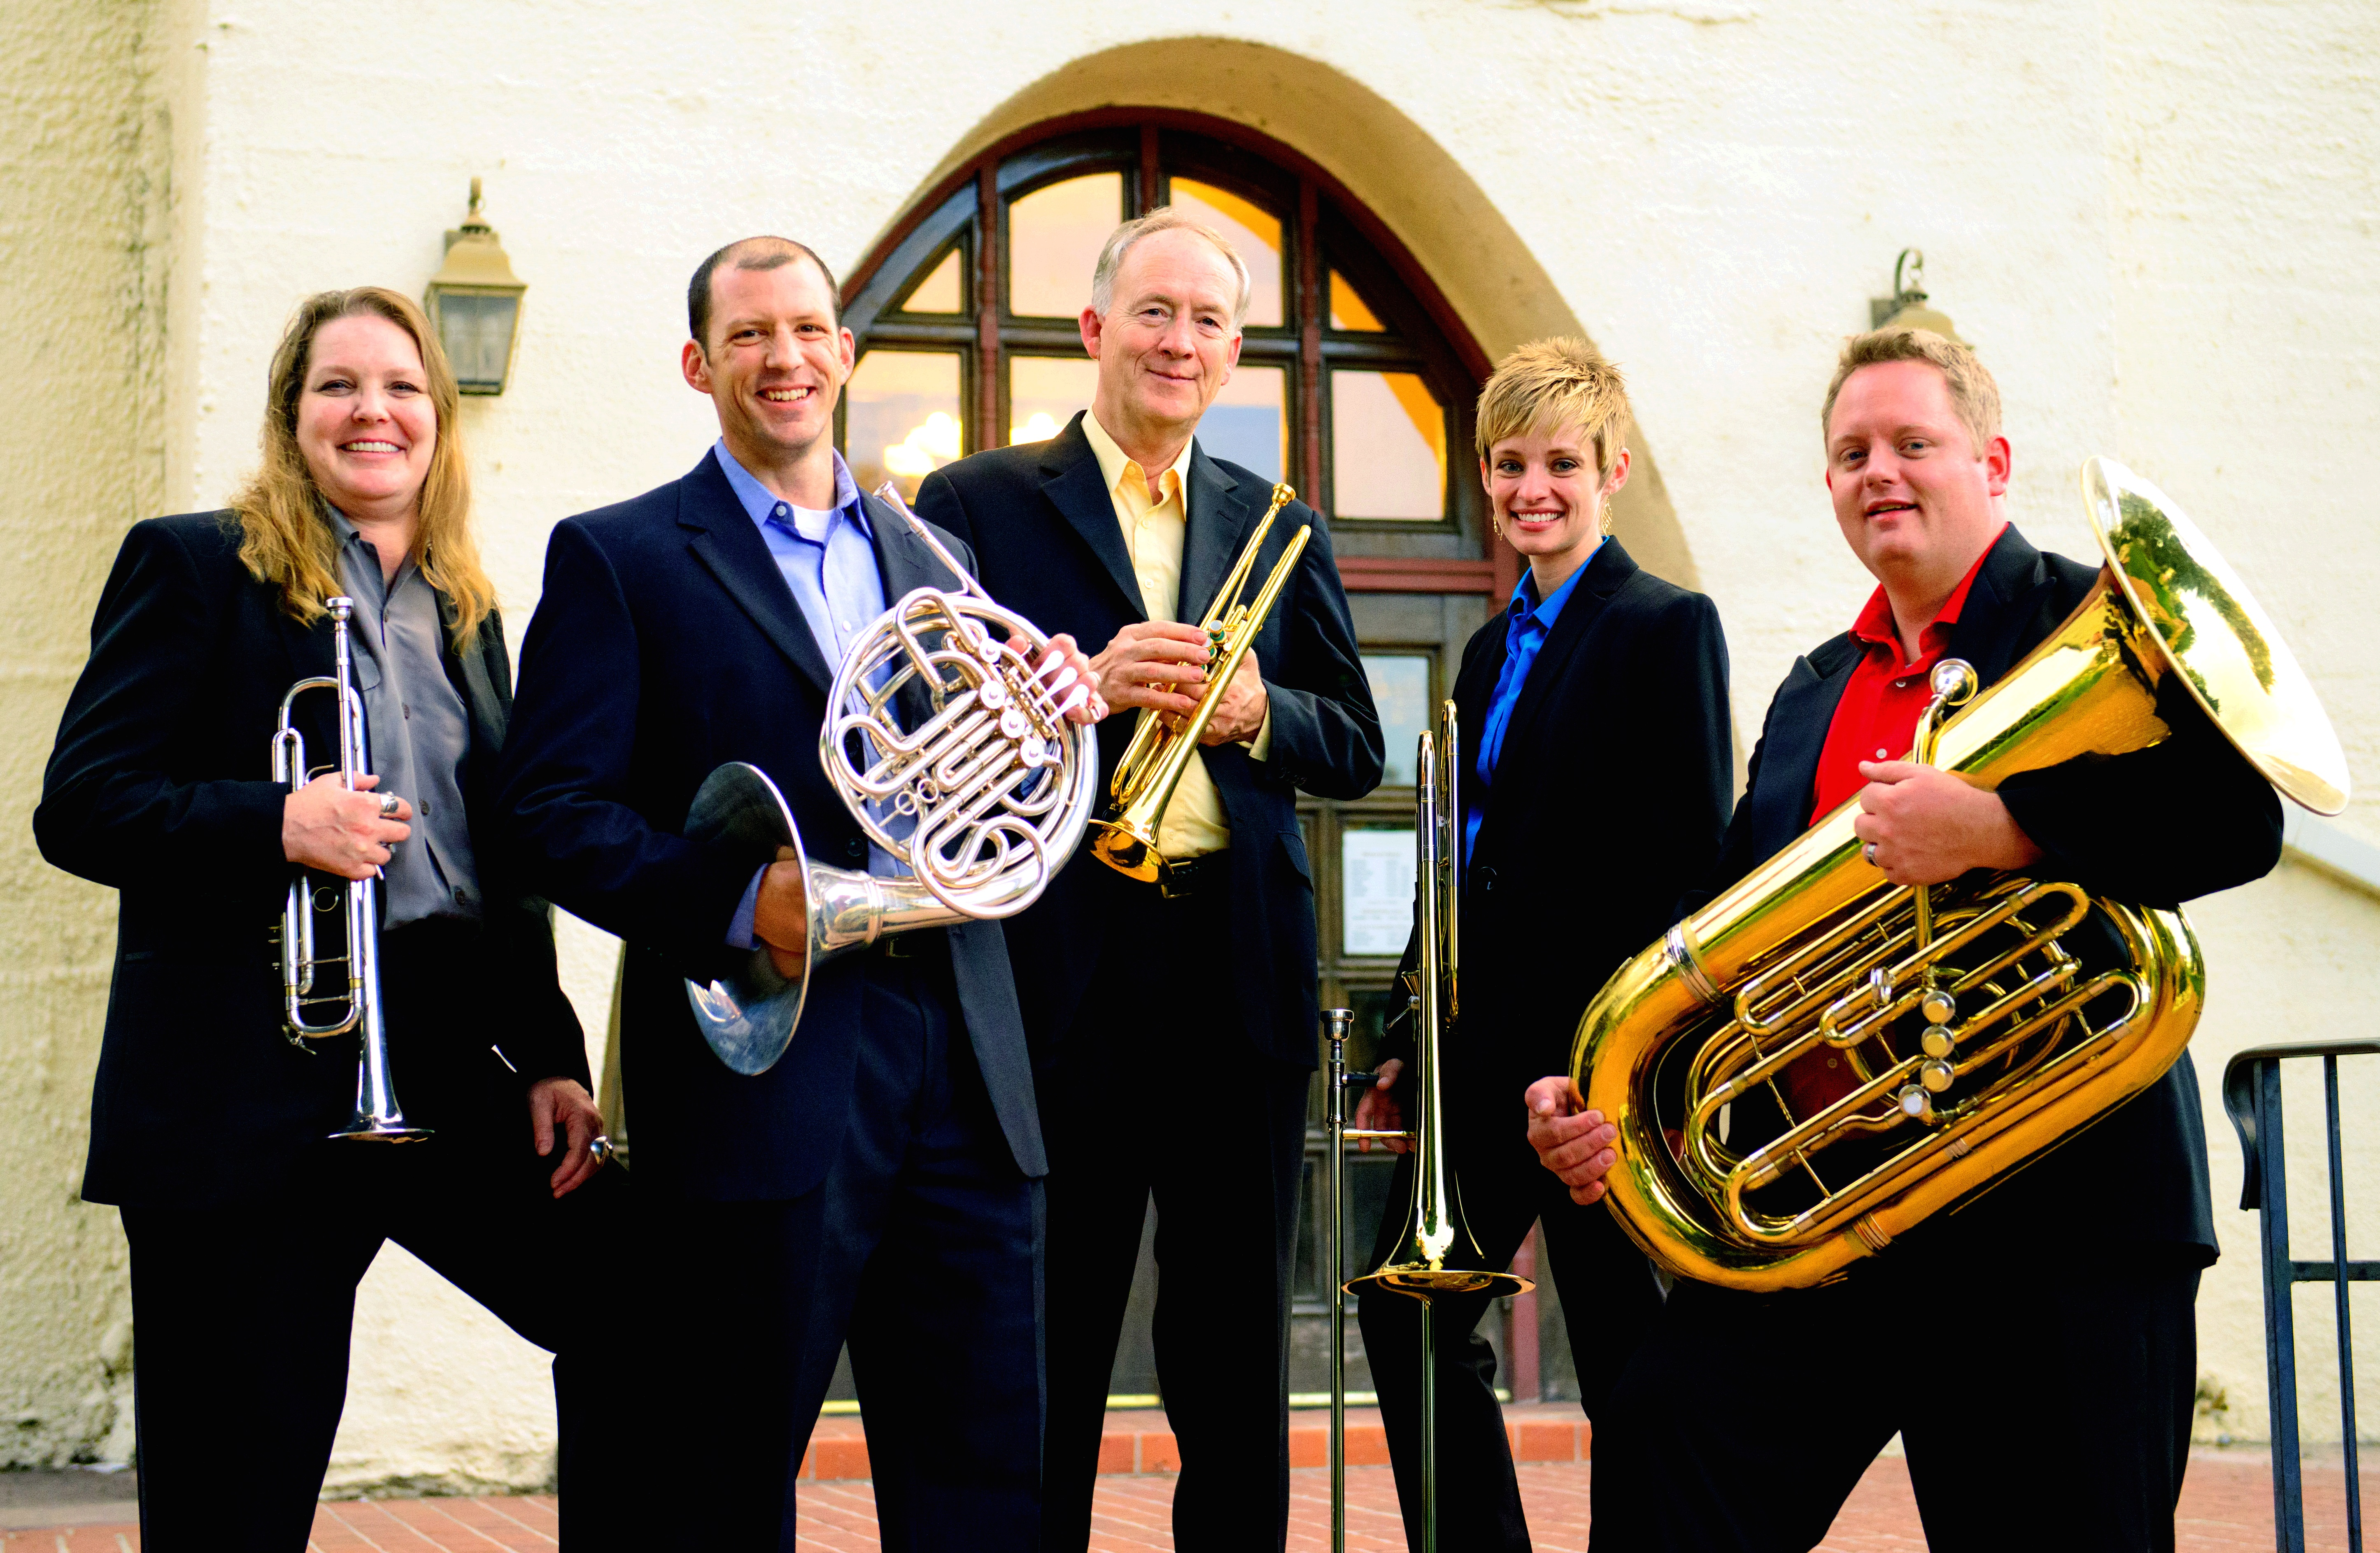 Art City Brass Quintet